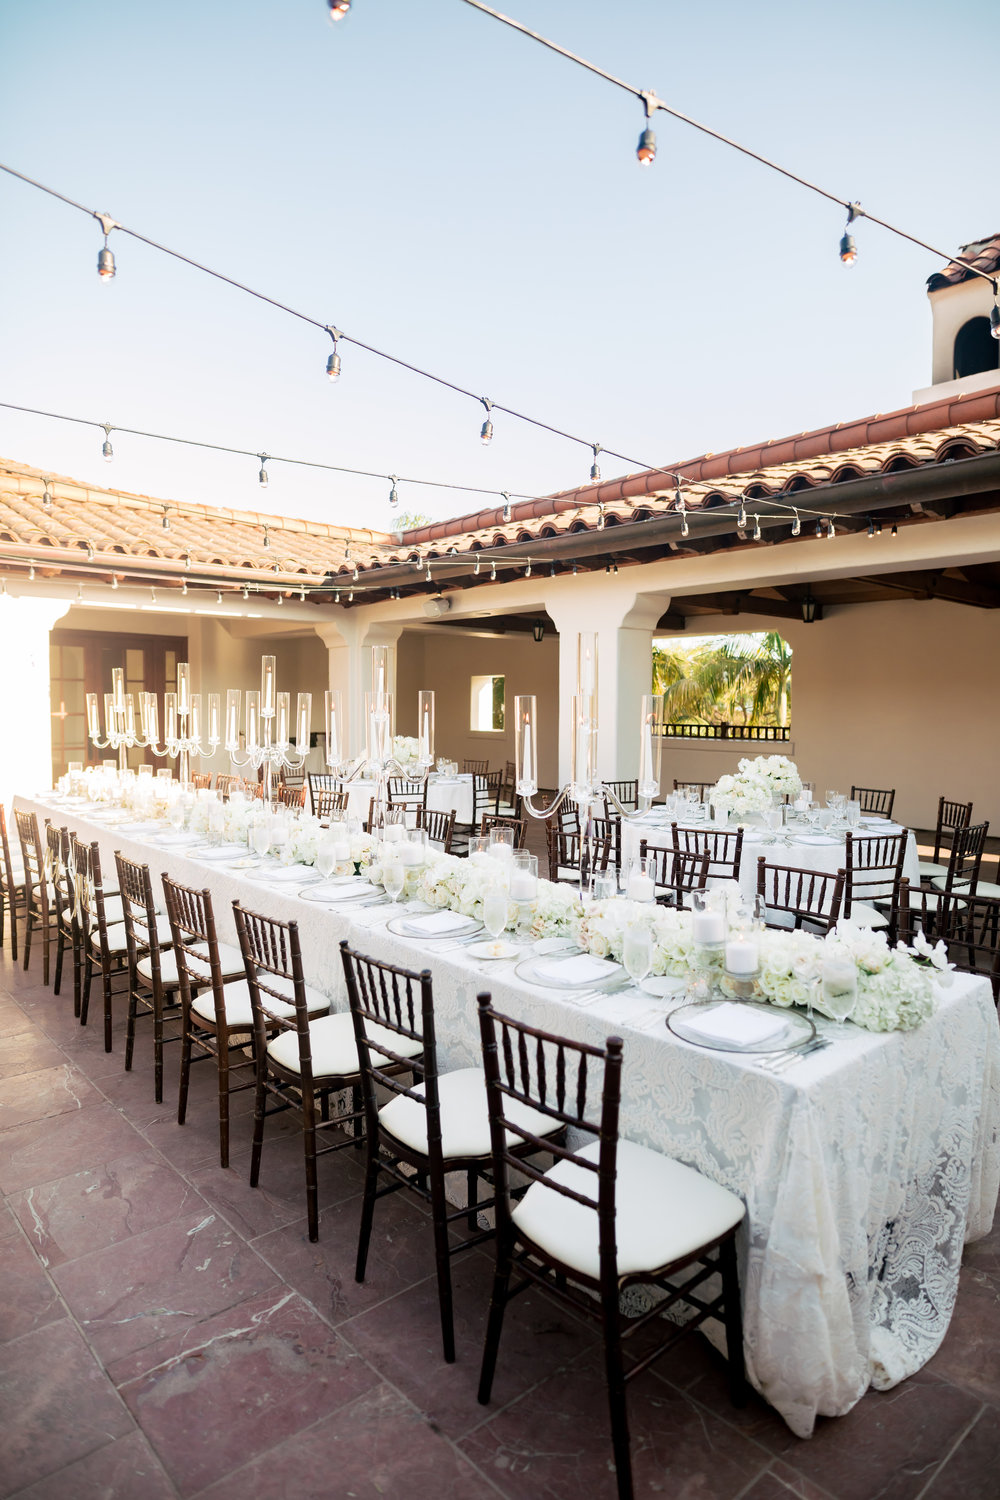 www.santabarbarawedding.com | Rewind Photography | The Ritz Carlton Bacara | Amazing Days Events | Reception Tables